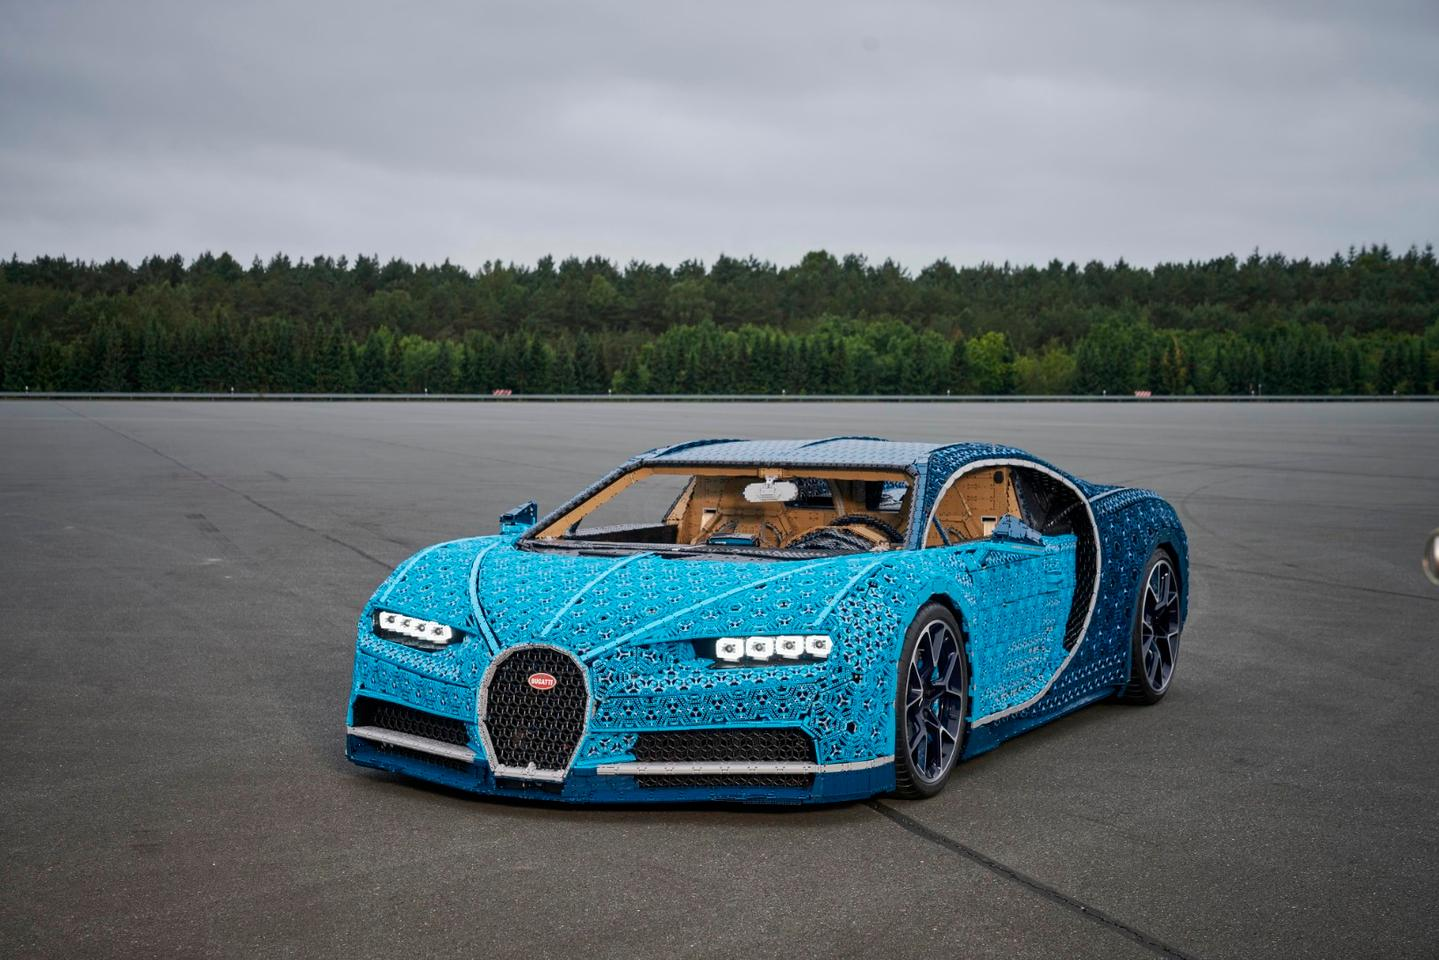 Over 1,000,000 Lego elements were used in the making of this life-sized, fully-functional Lego Bugatti Chiron